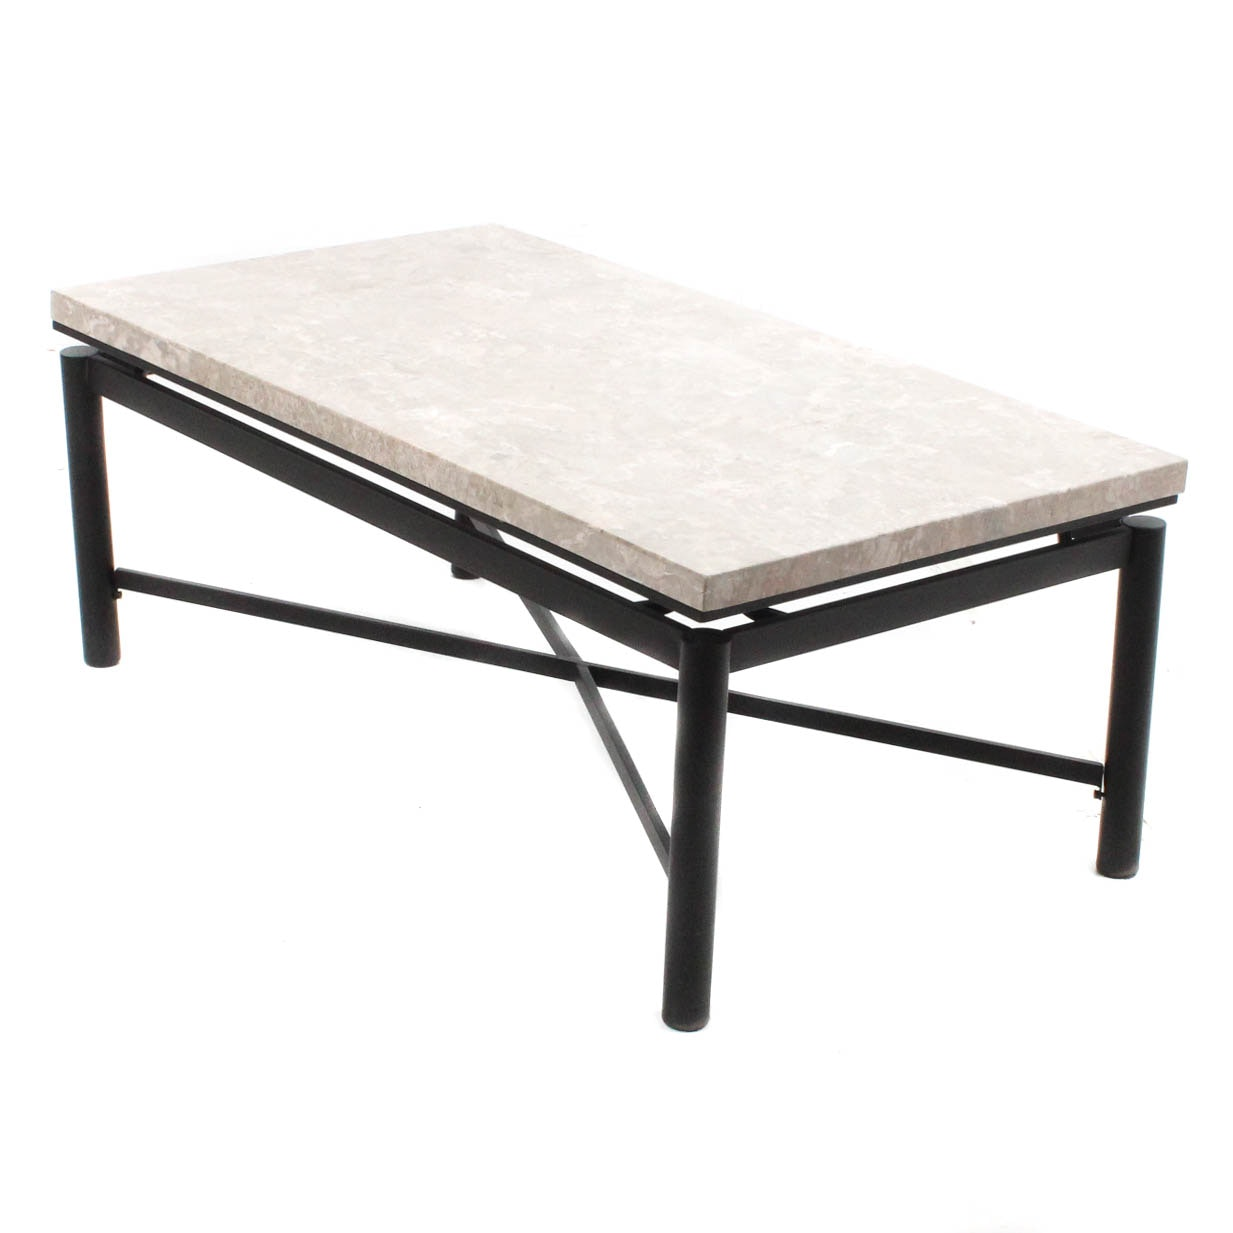 Steve Silver Company Marble Tile Top Coffee Table